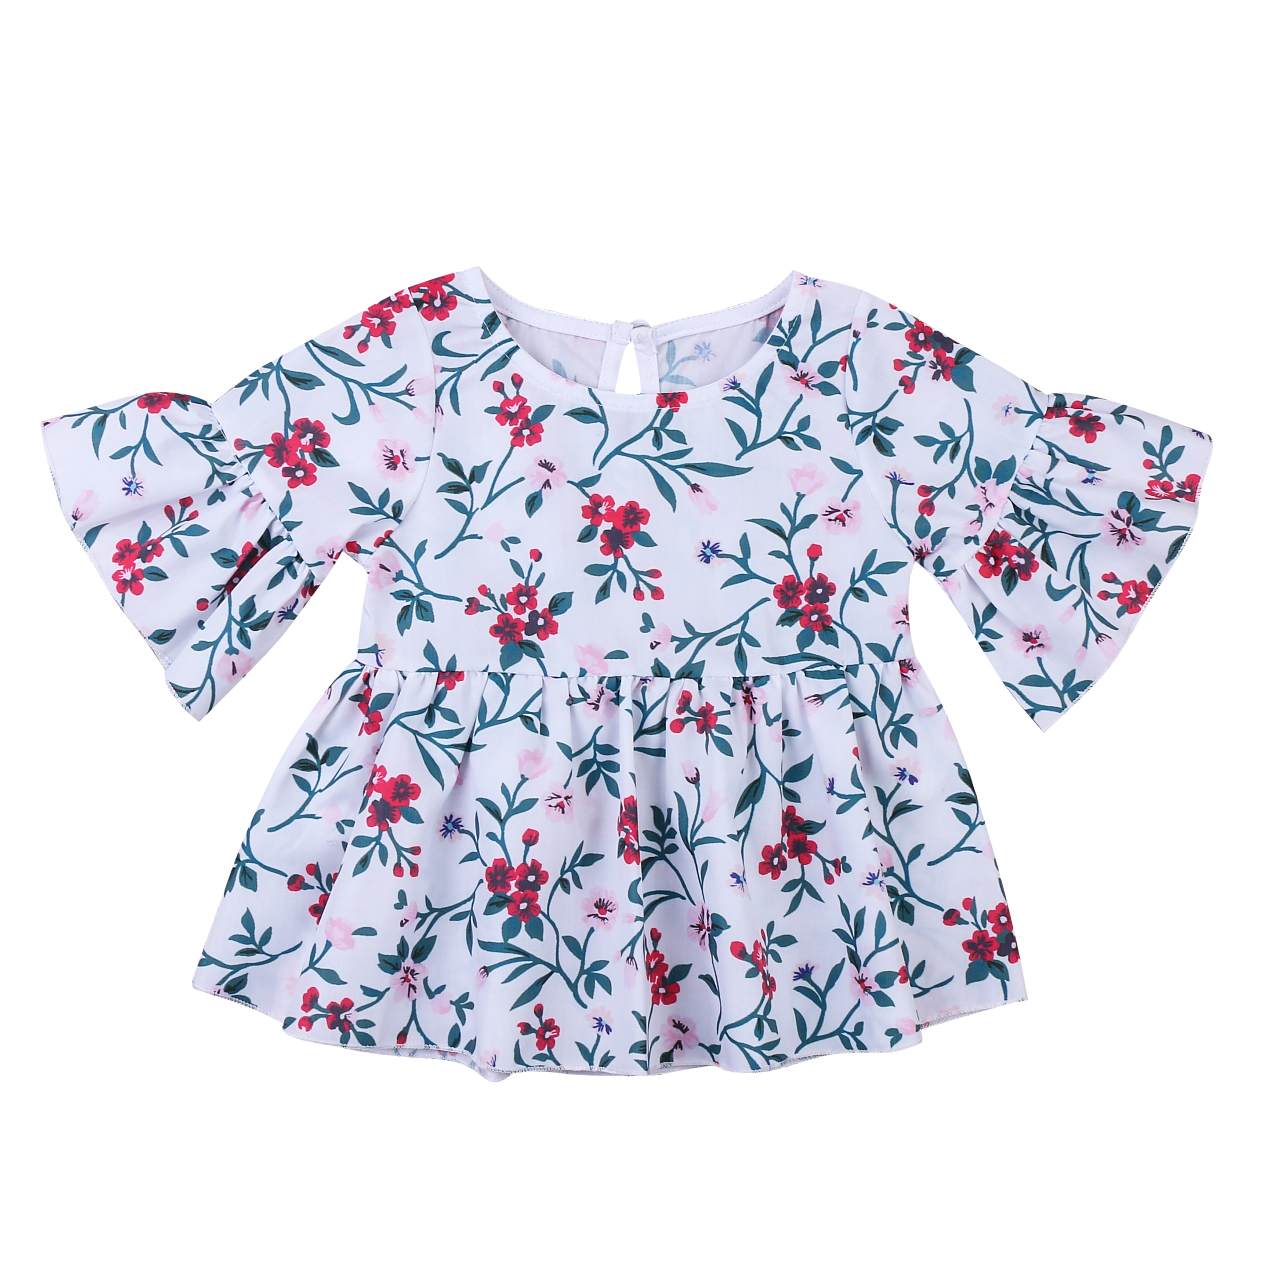 Floral Toddler Kids Baby Girls Clothes Summer Print Flower Dress Tops Blouses 0-5Y